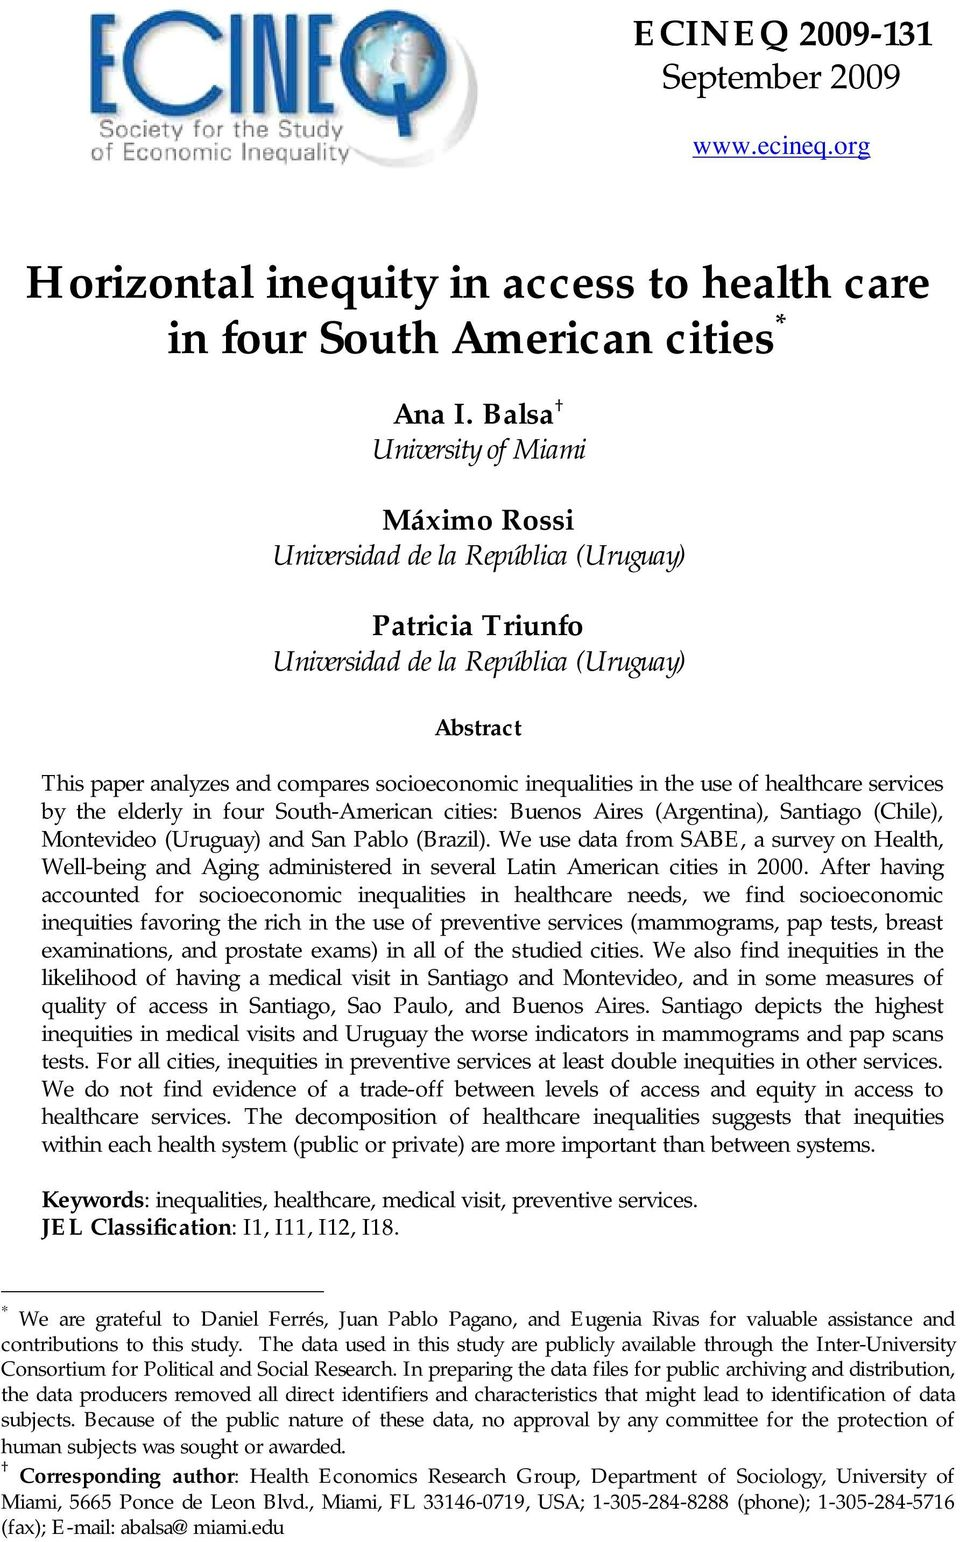 inequalities in the use of healthcare services by the elderly in four South-American cities: Buenos Aires (Argentina), Santiago (Chile), Montevideo (Uruguay) and San Pablo (Brazil).